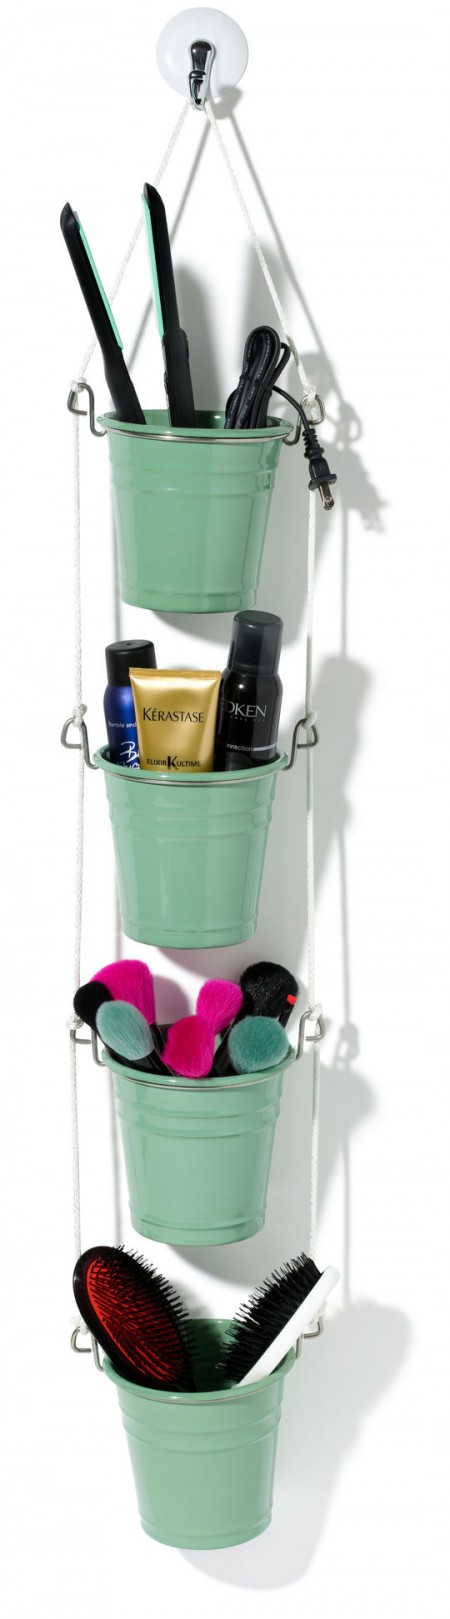 Hanging Ikea Fintorp Utensil Storing A Hair Straightener Beauty Products Makeup Brushes And Glamour This Bathroom Storage